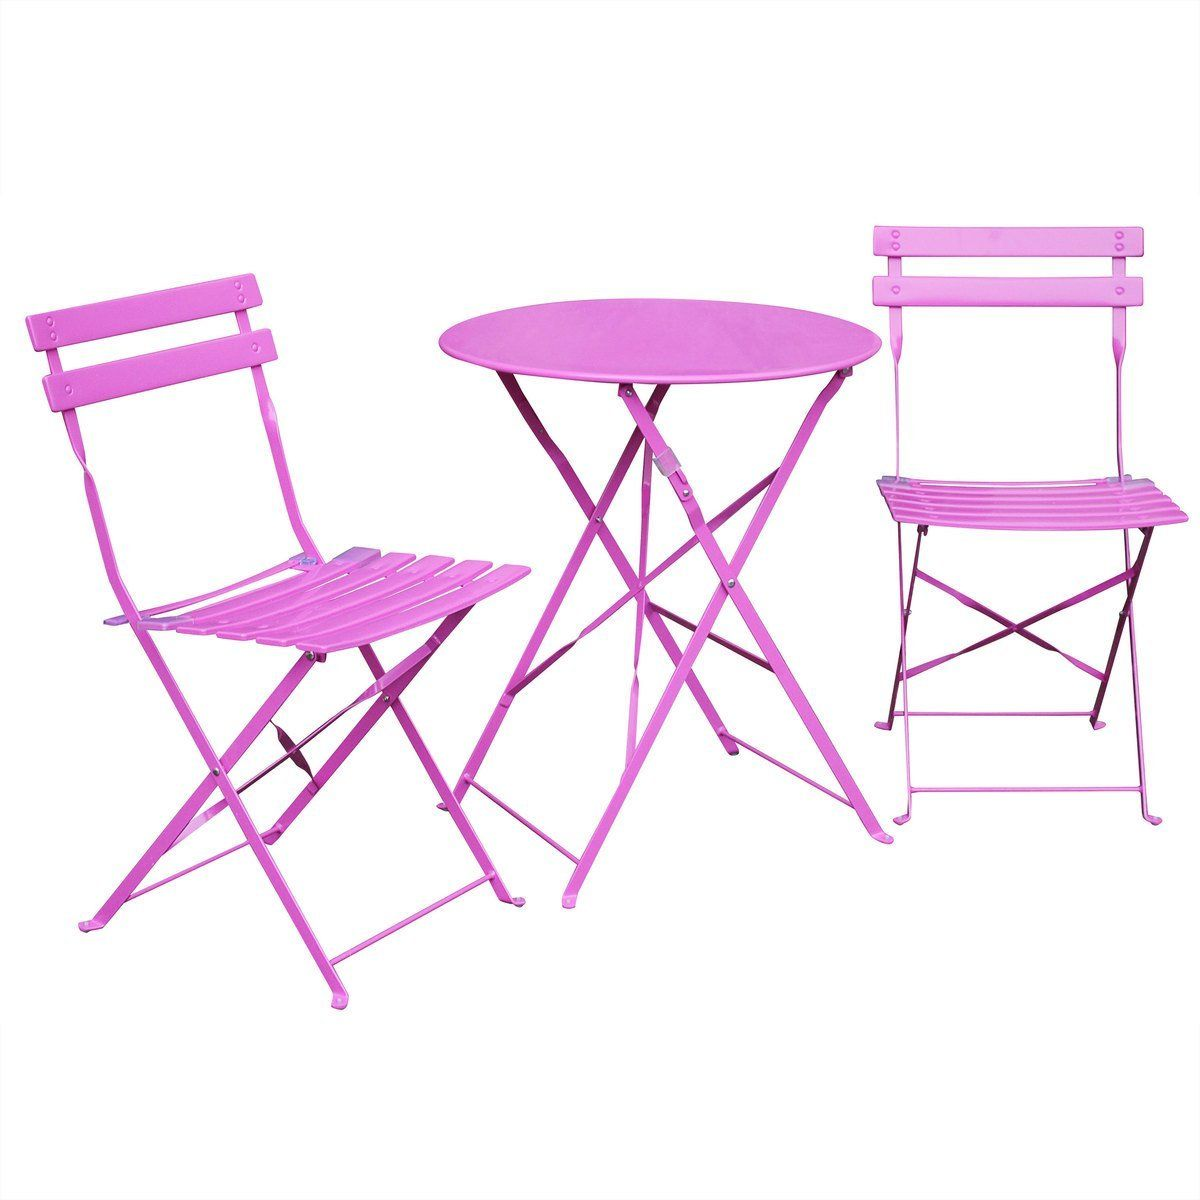 alice 39 s garden salon de jardin bistrot pliable emilia rond rose table ronde 60cm avec. Black Bedroom Furniture Sets. Home Design Ideas